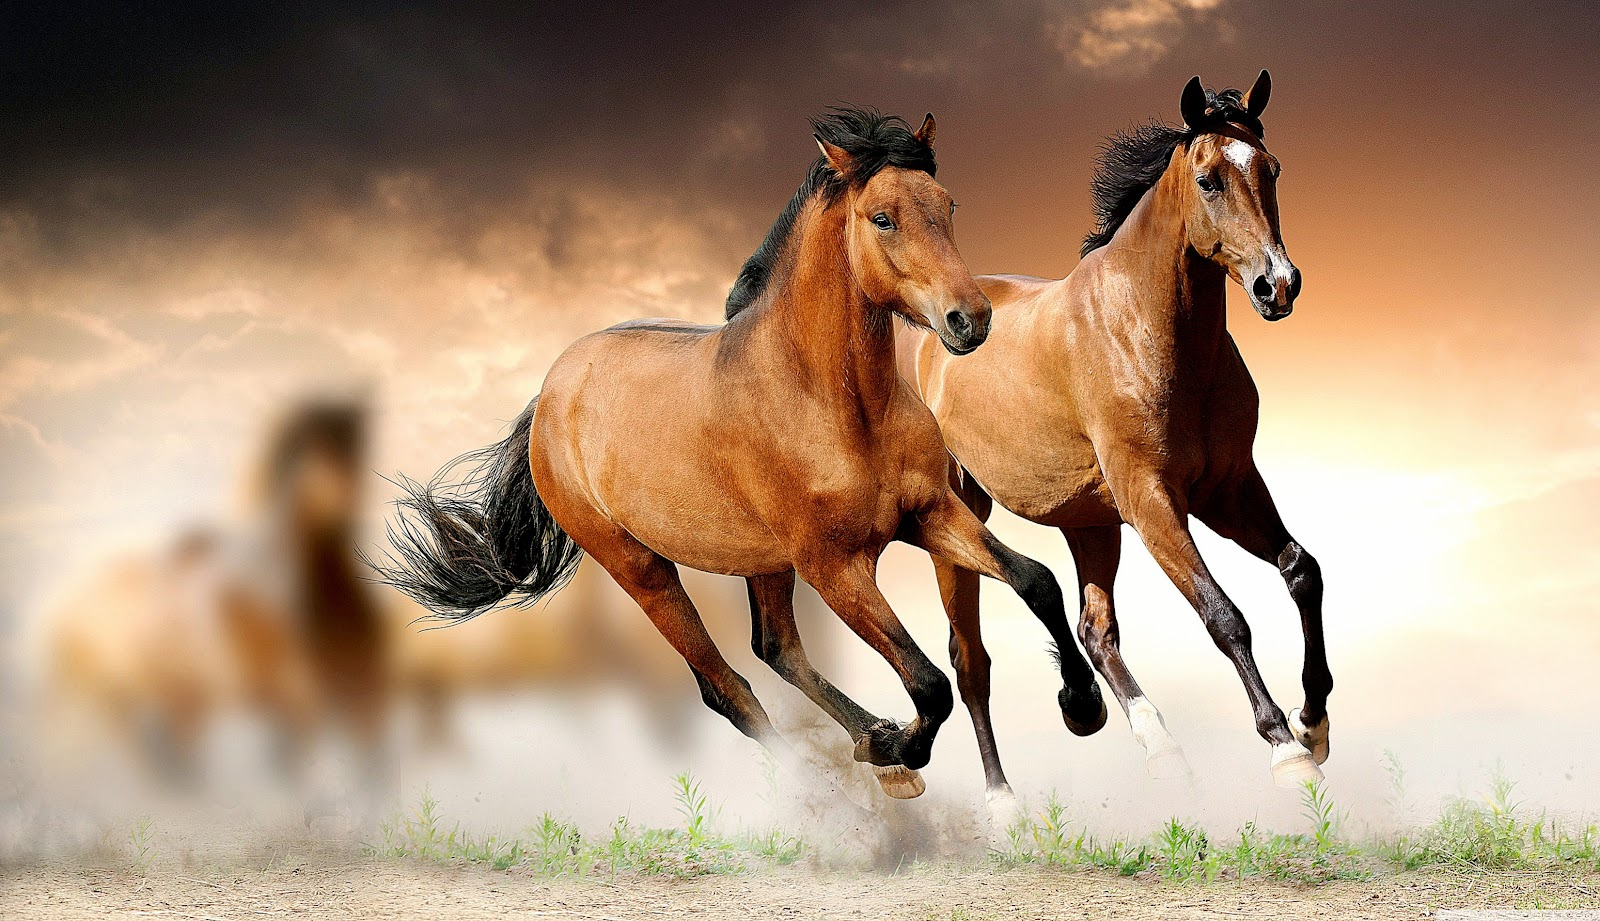 Fantastic   Wallpaper Horse Glitter - horses-running-hd-desktop-wallpaper-high-definition-fullscreen  Pictures_494189.jpg